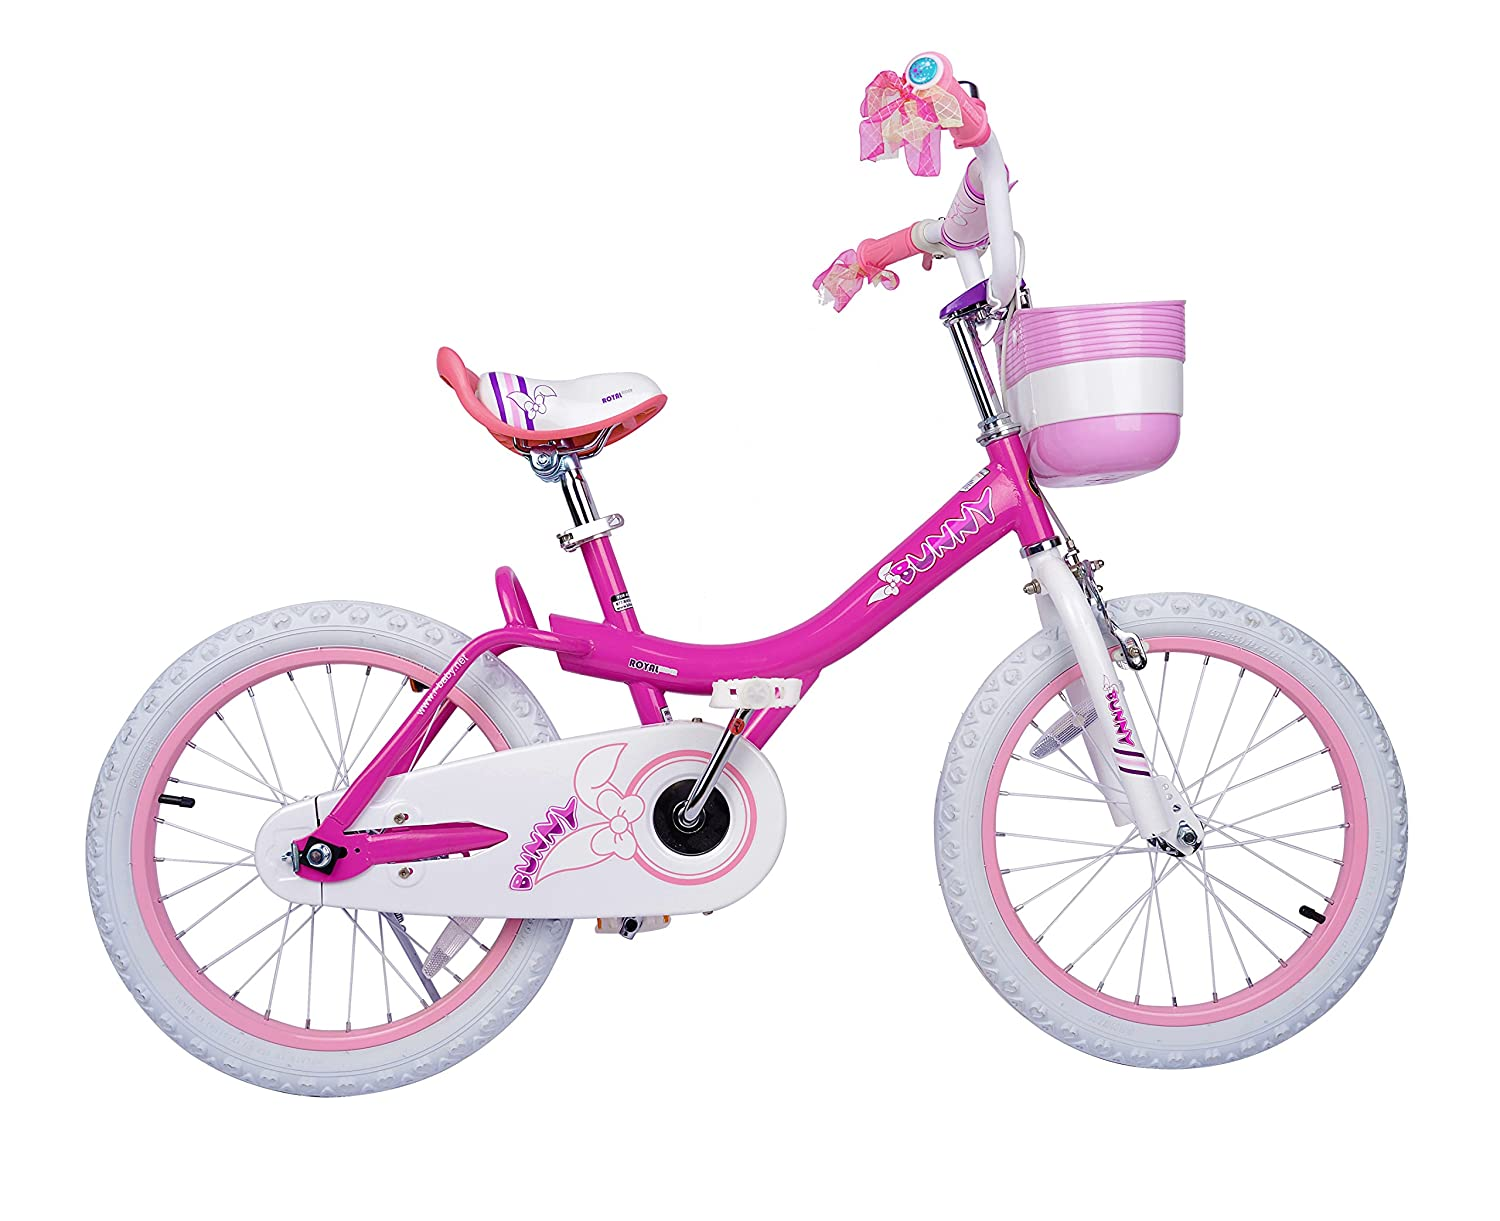 Royalbaby Jenny & Bunny Girl's Bike, 12-14-16-18 inch Wheels, Pink and Fuchsia ROYALBABY CYCLE BEIJING CO. LTD.